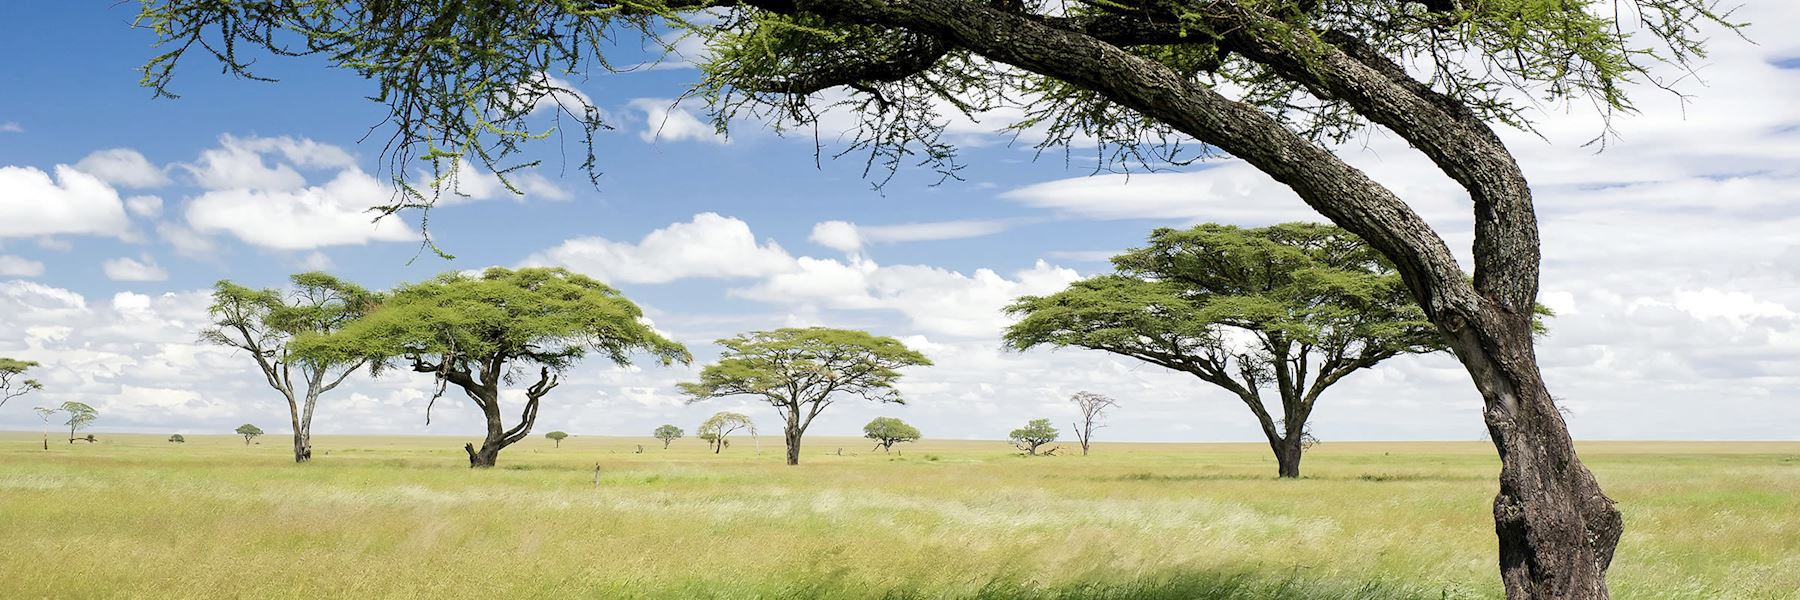 Zimbabwe safaris and holidays